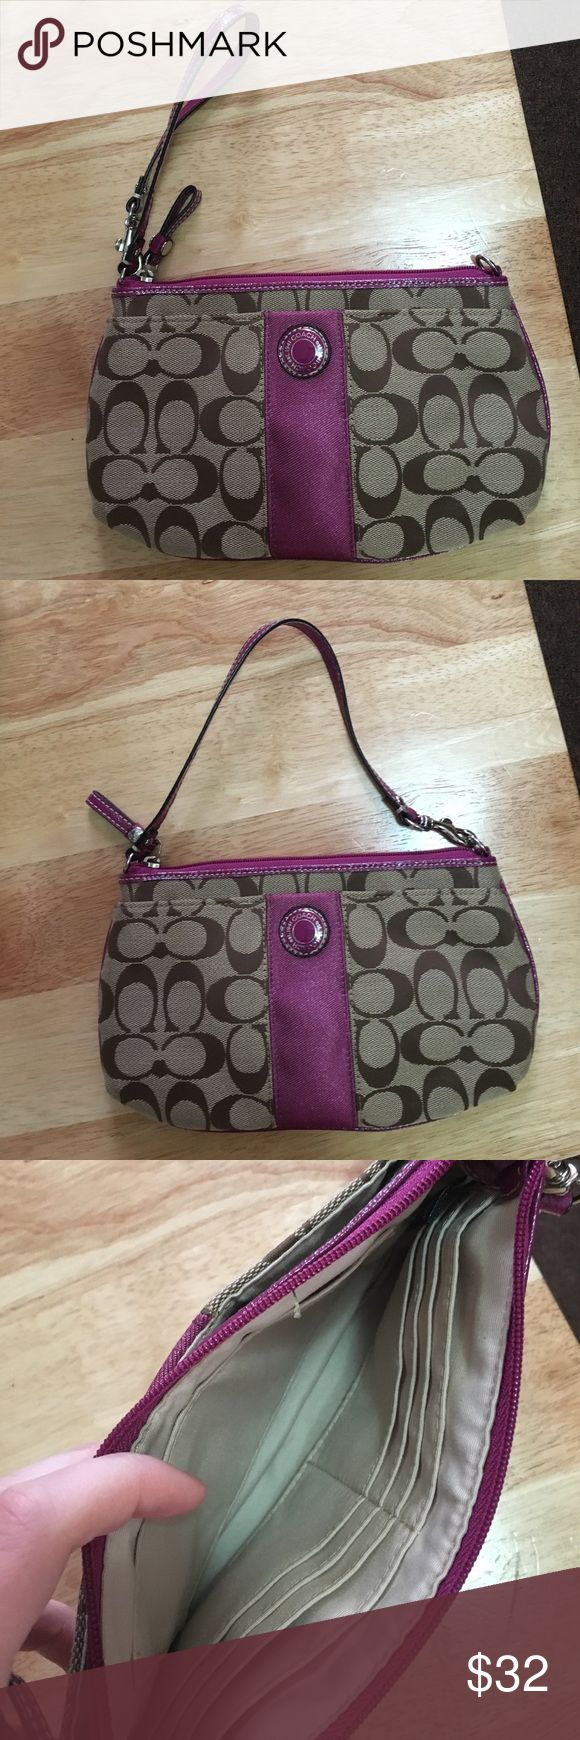 Coach wristlet with adjustable strap Only used a few times. 9 inches by 6 inches. Strap is 6.5 inches when used as a clutch. Body is your typical coach tan color and the purple/pink accents are a very smooth material. Wristlet part is patent leather. Perfect for a night out or even just to hold important papers when you're traveling! Very few to no signs of wear. Zipper closes the larger cavity of the bag, a smaller, open pocket is on the front. Coach Bags Clutches & Wristlets